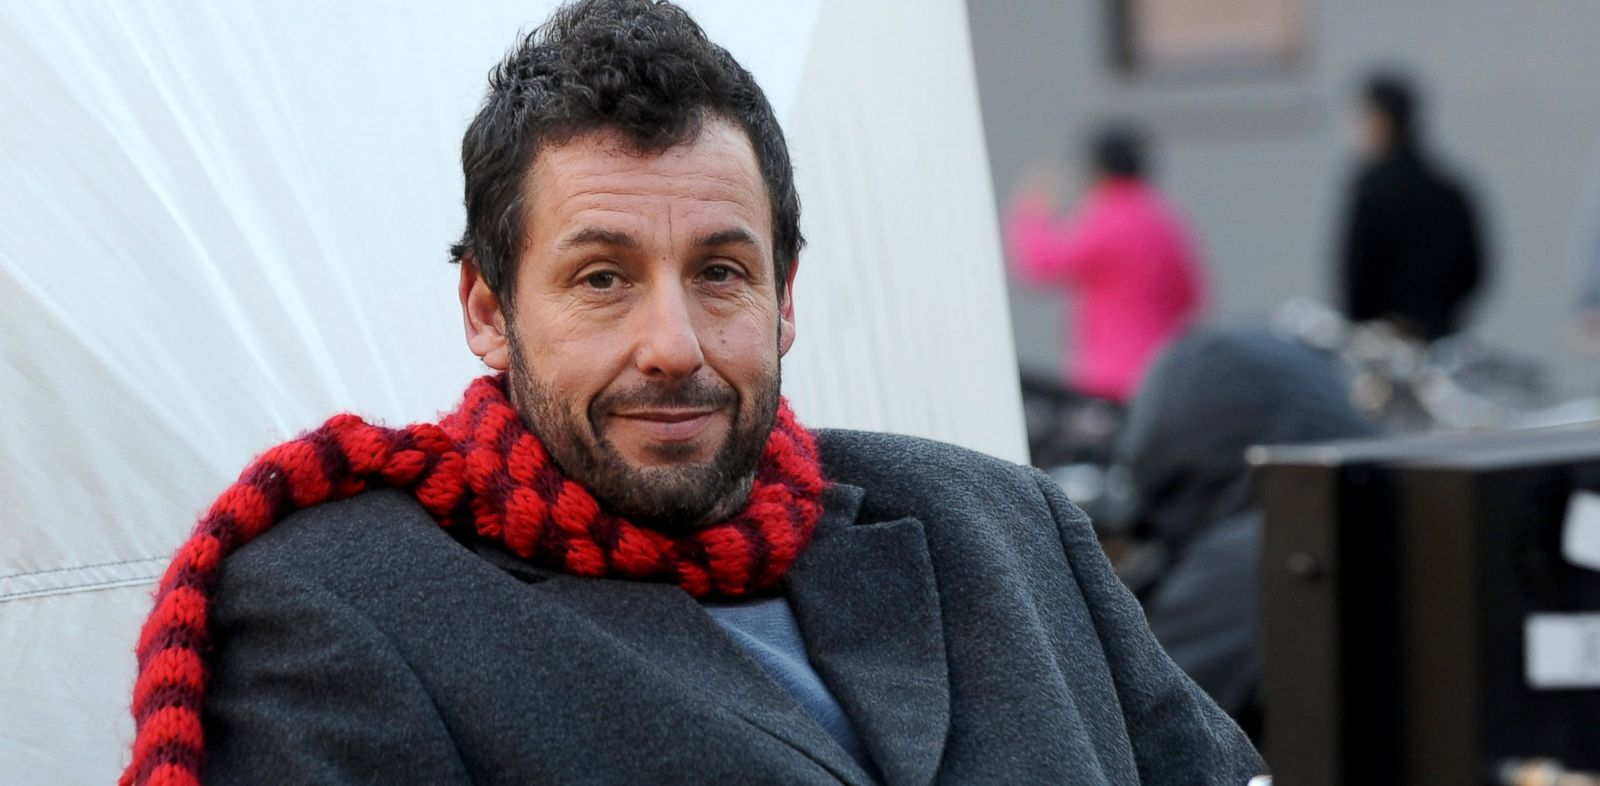 PHOTO: Adam Sandler on the set of